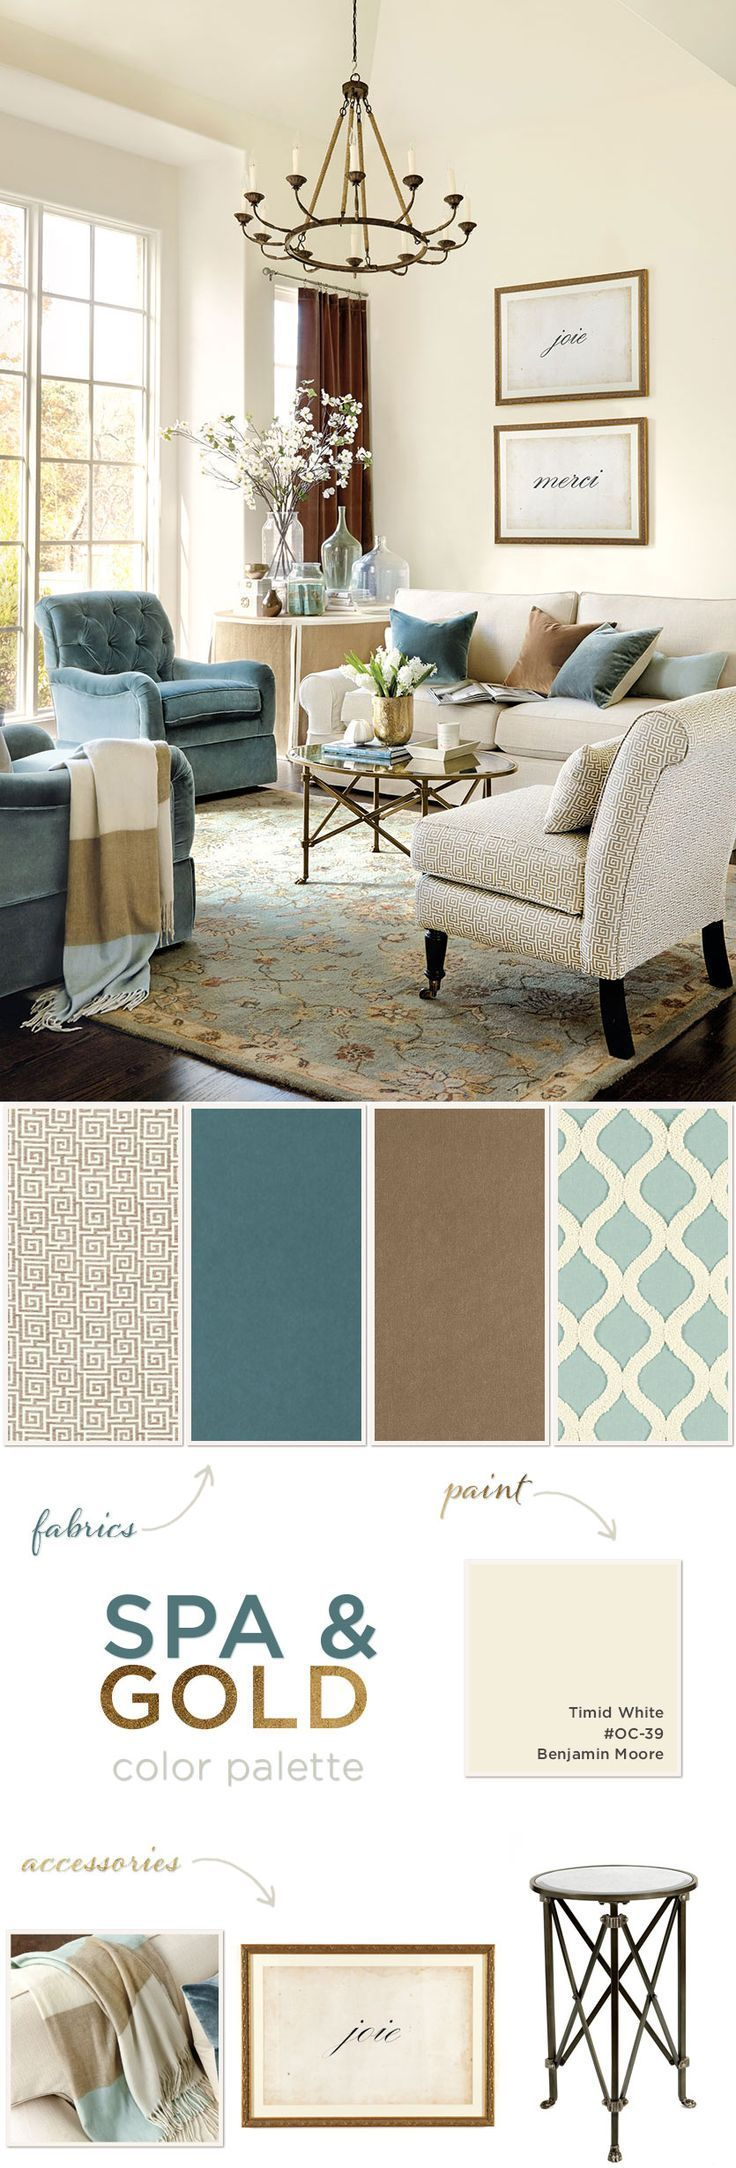 Living Room Colors For 2014 best 25+ living room colors ideas on pinterest | living room paint